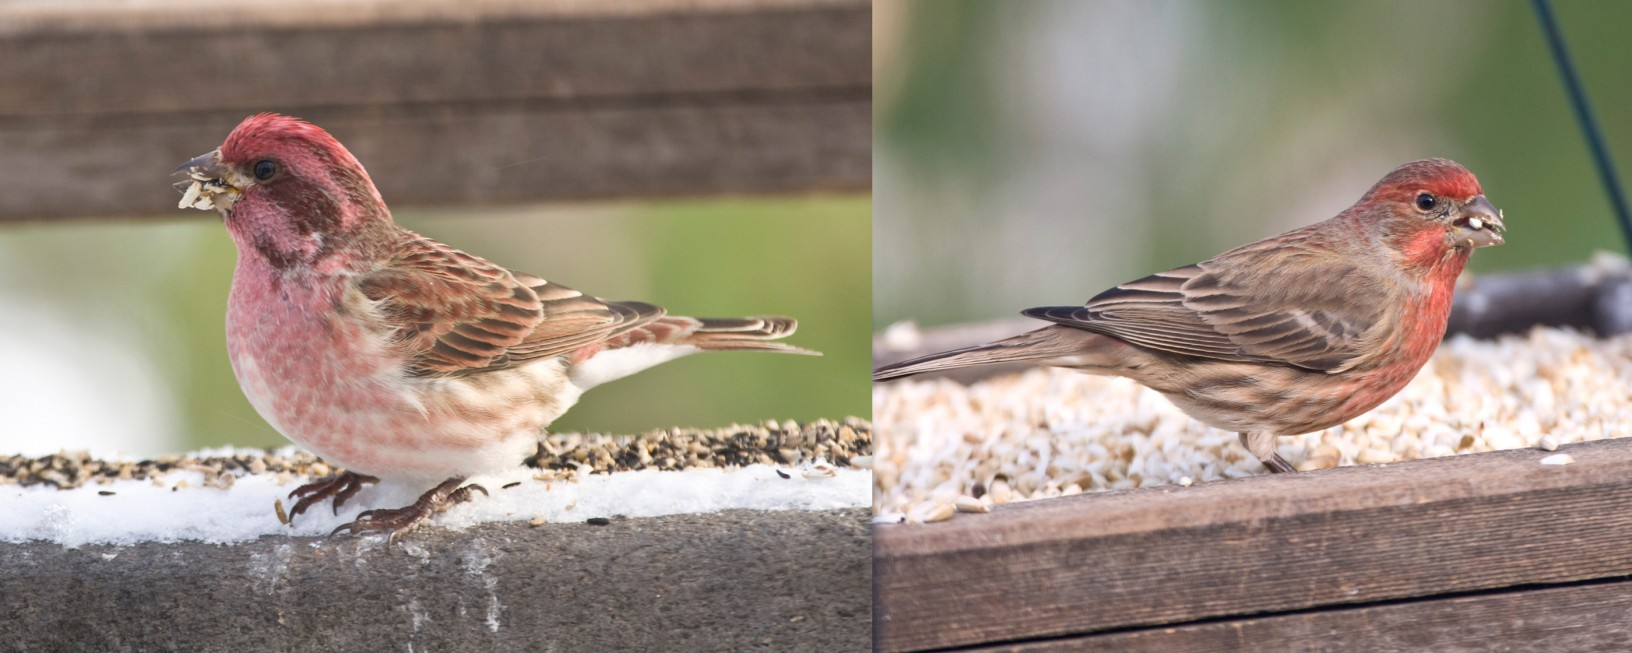 left- male Purple Finch, right- male House Finch